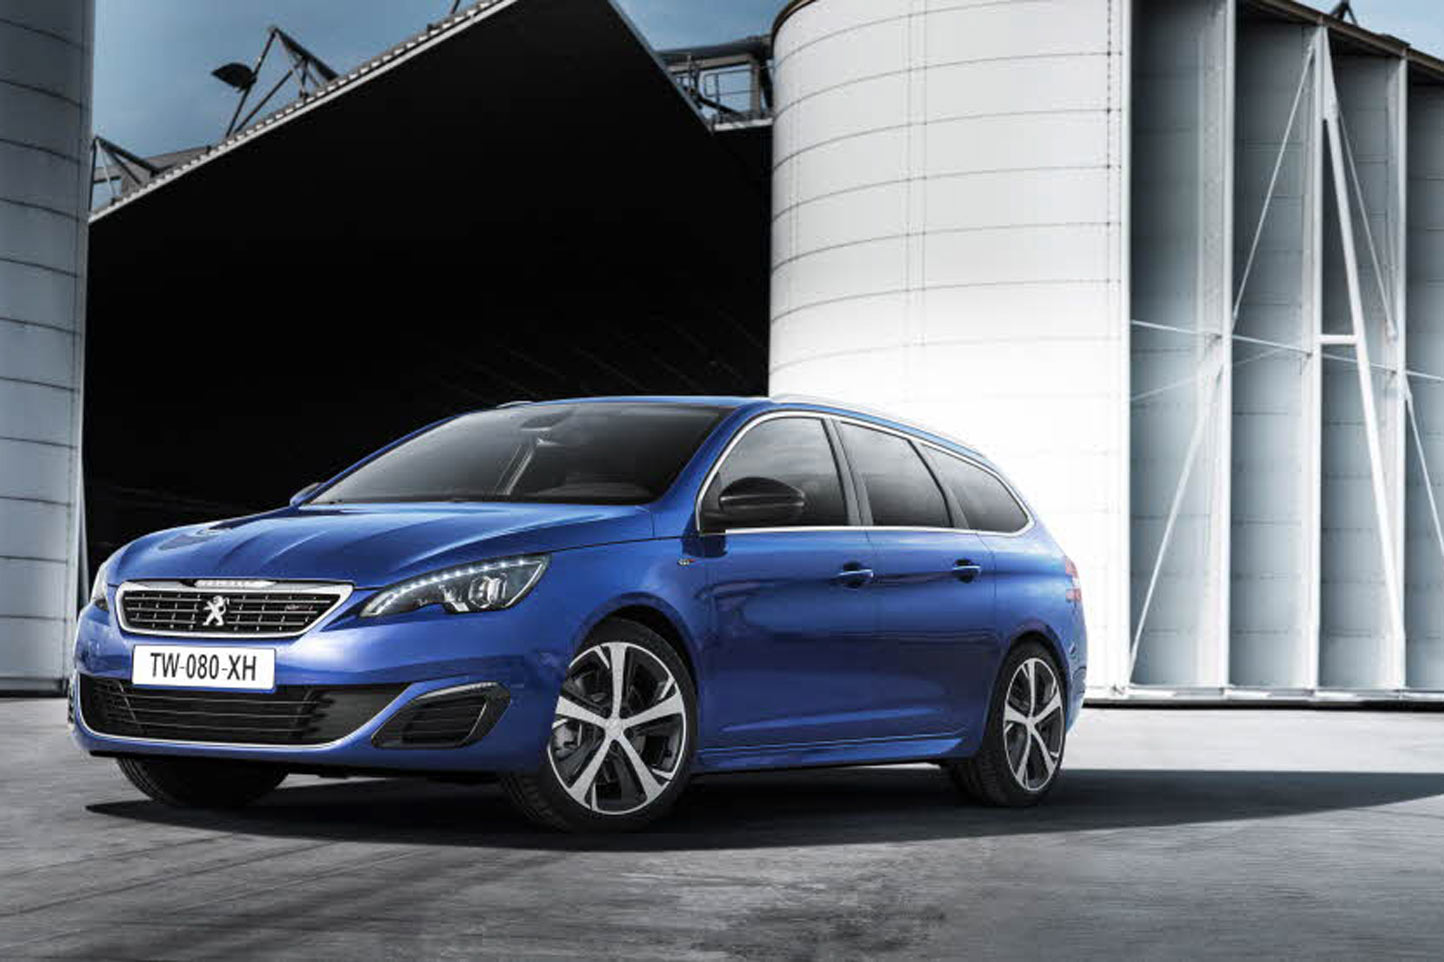 2015 peugeot 308 sw gt car photos catalog 2018. Black Bedroom Furniture Sets. Home Design Ideas